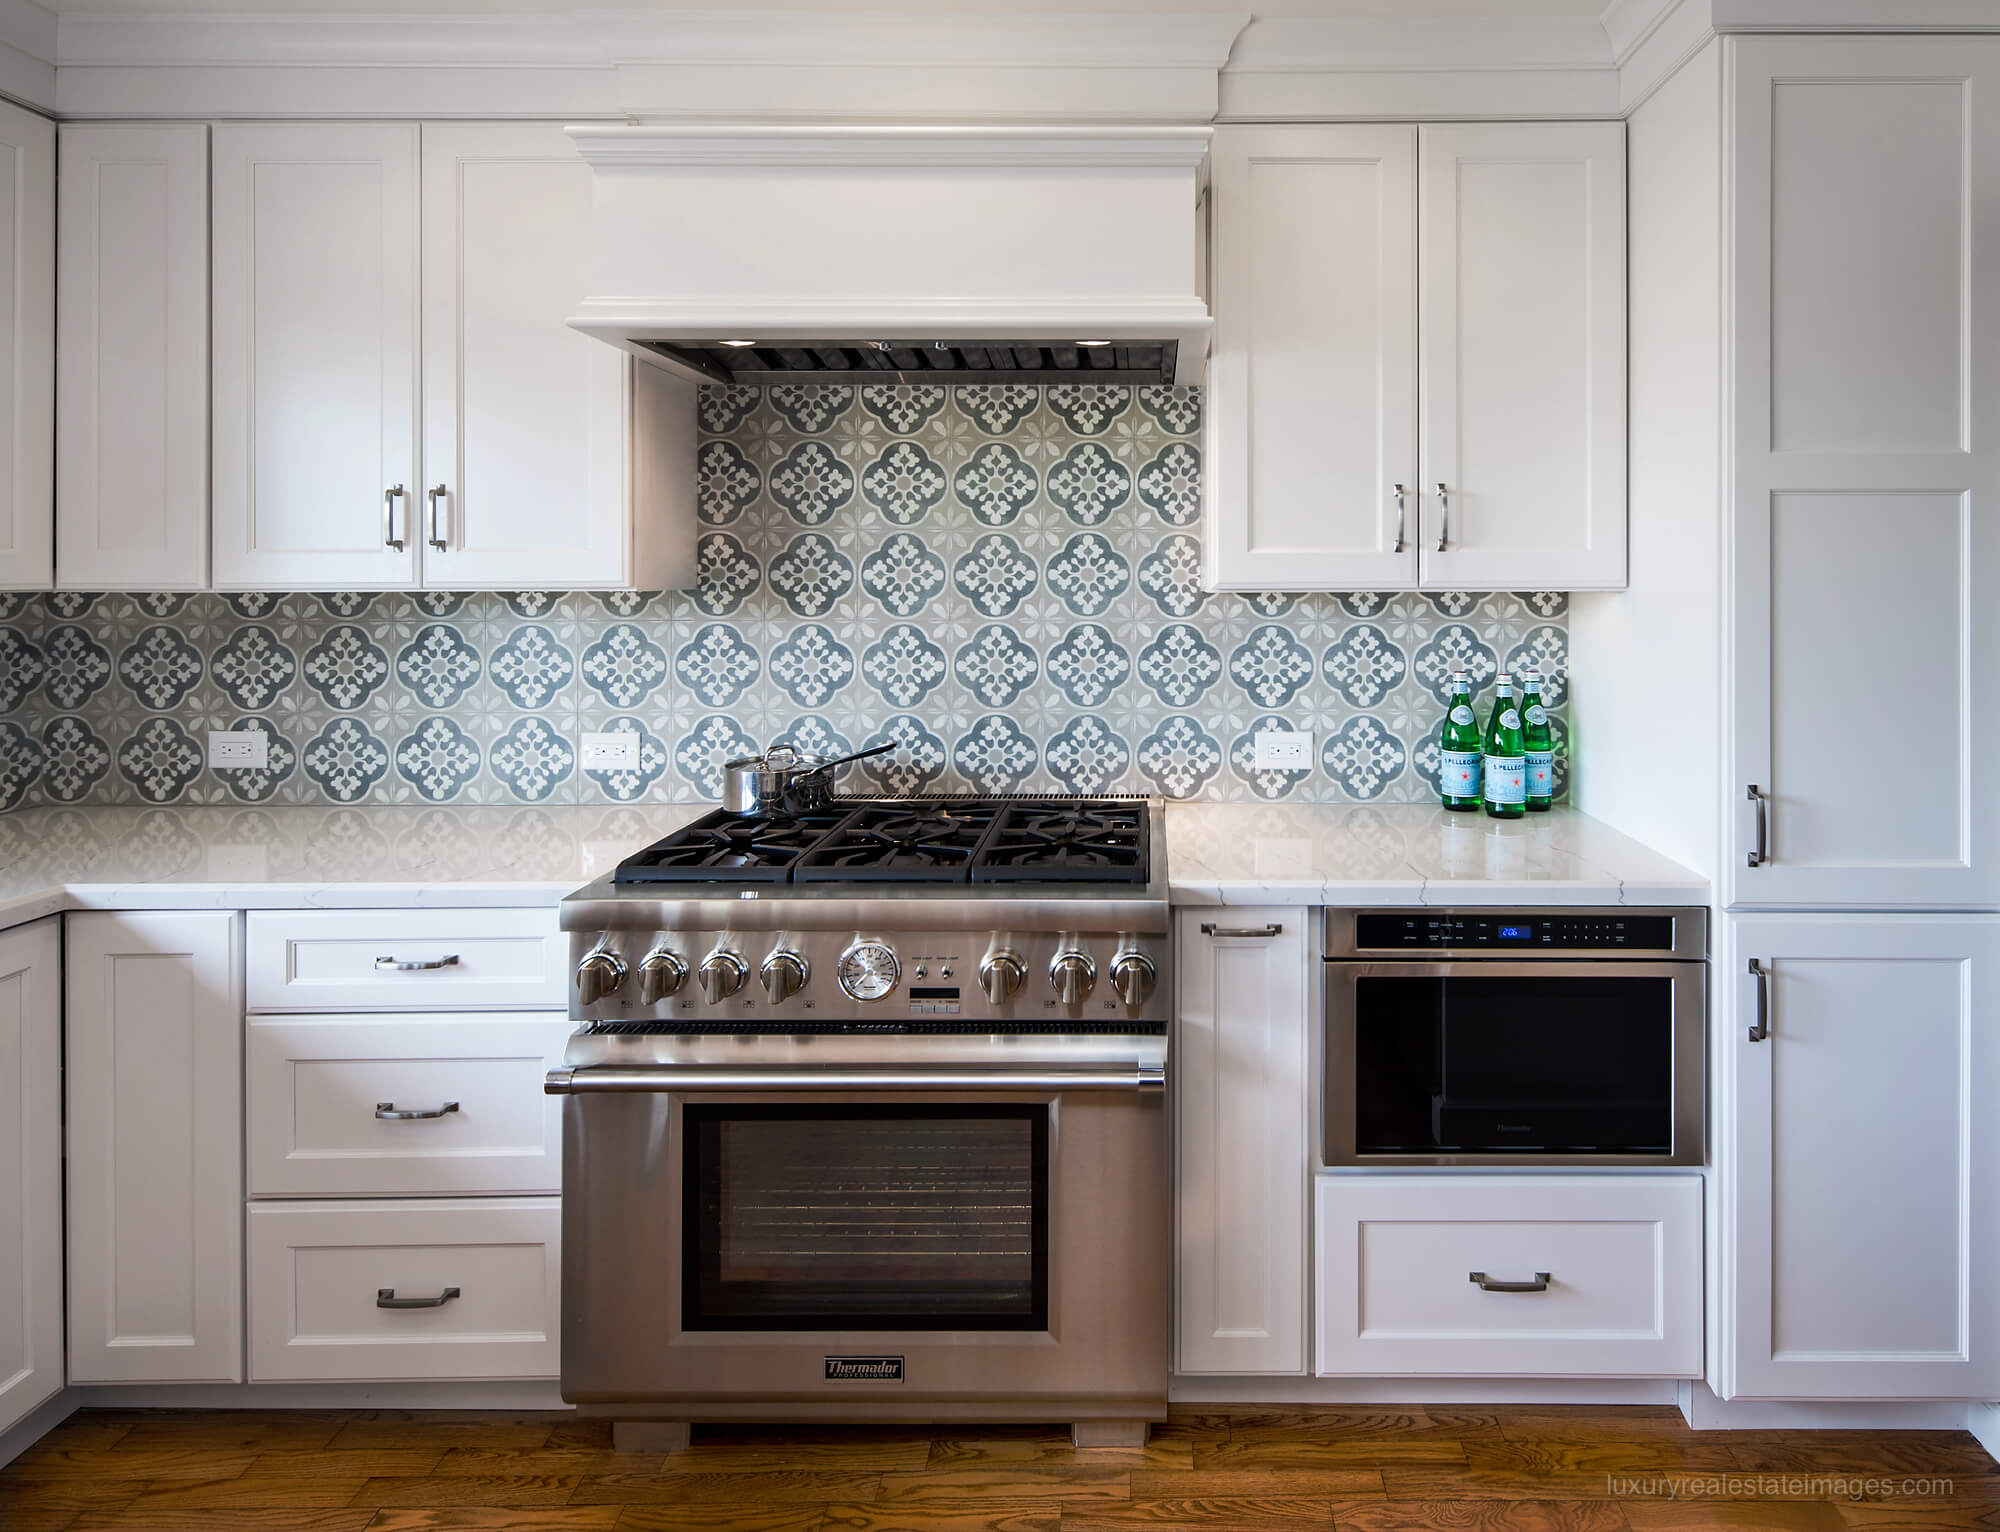 white kitchen with simple white counter top and patterned tile backsplash